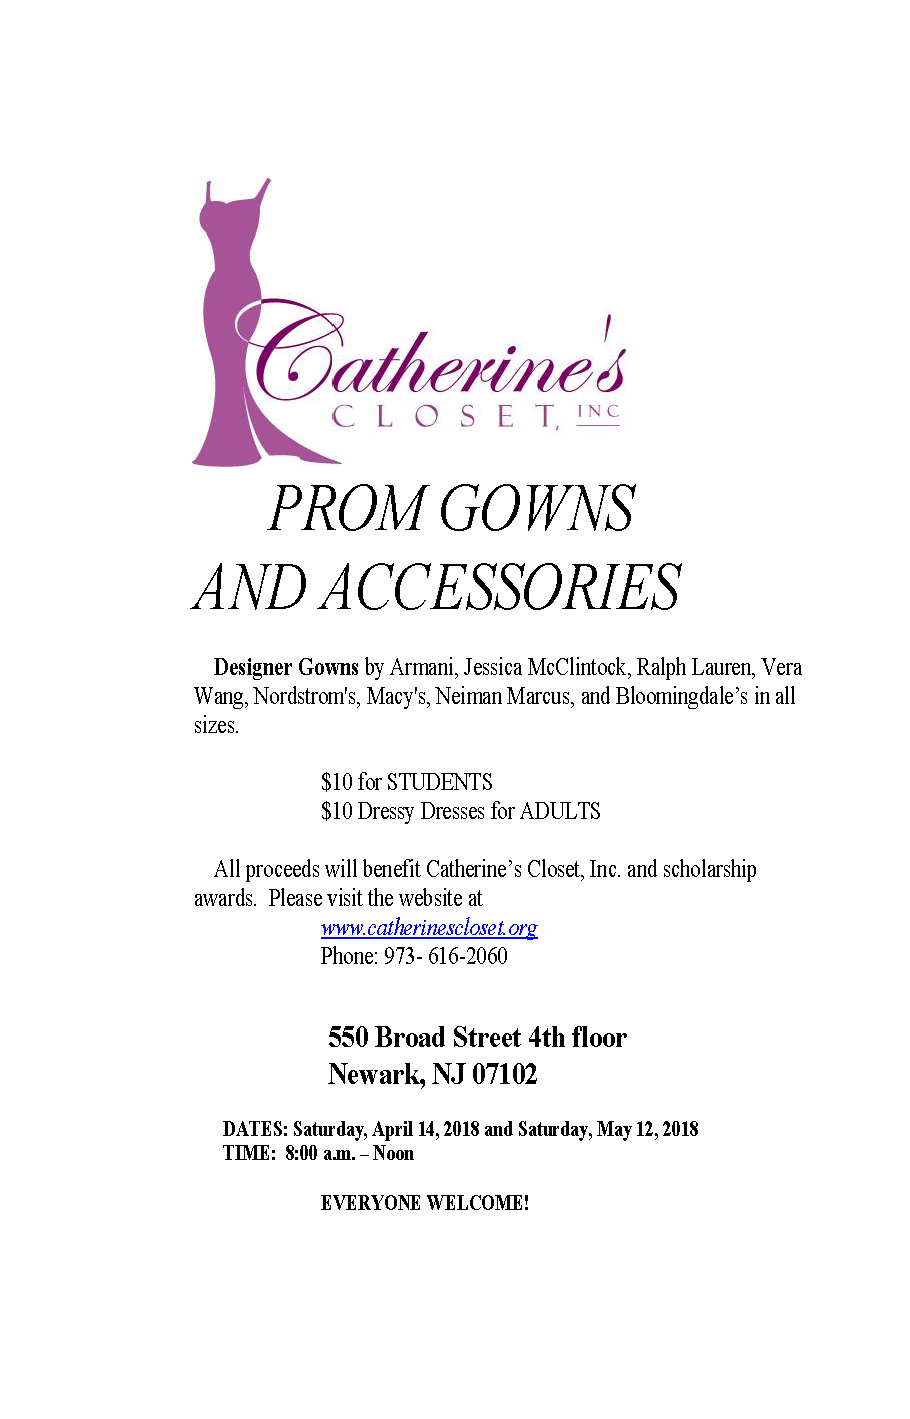 Catheriness closet flyer.png